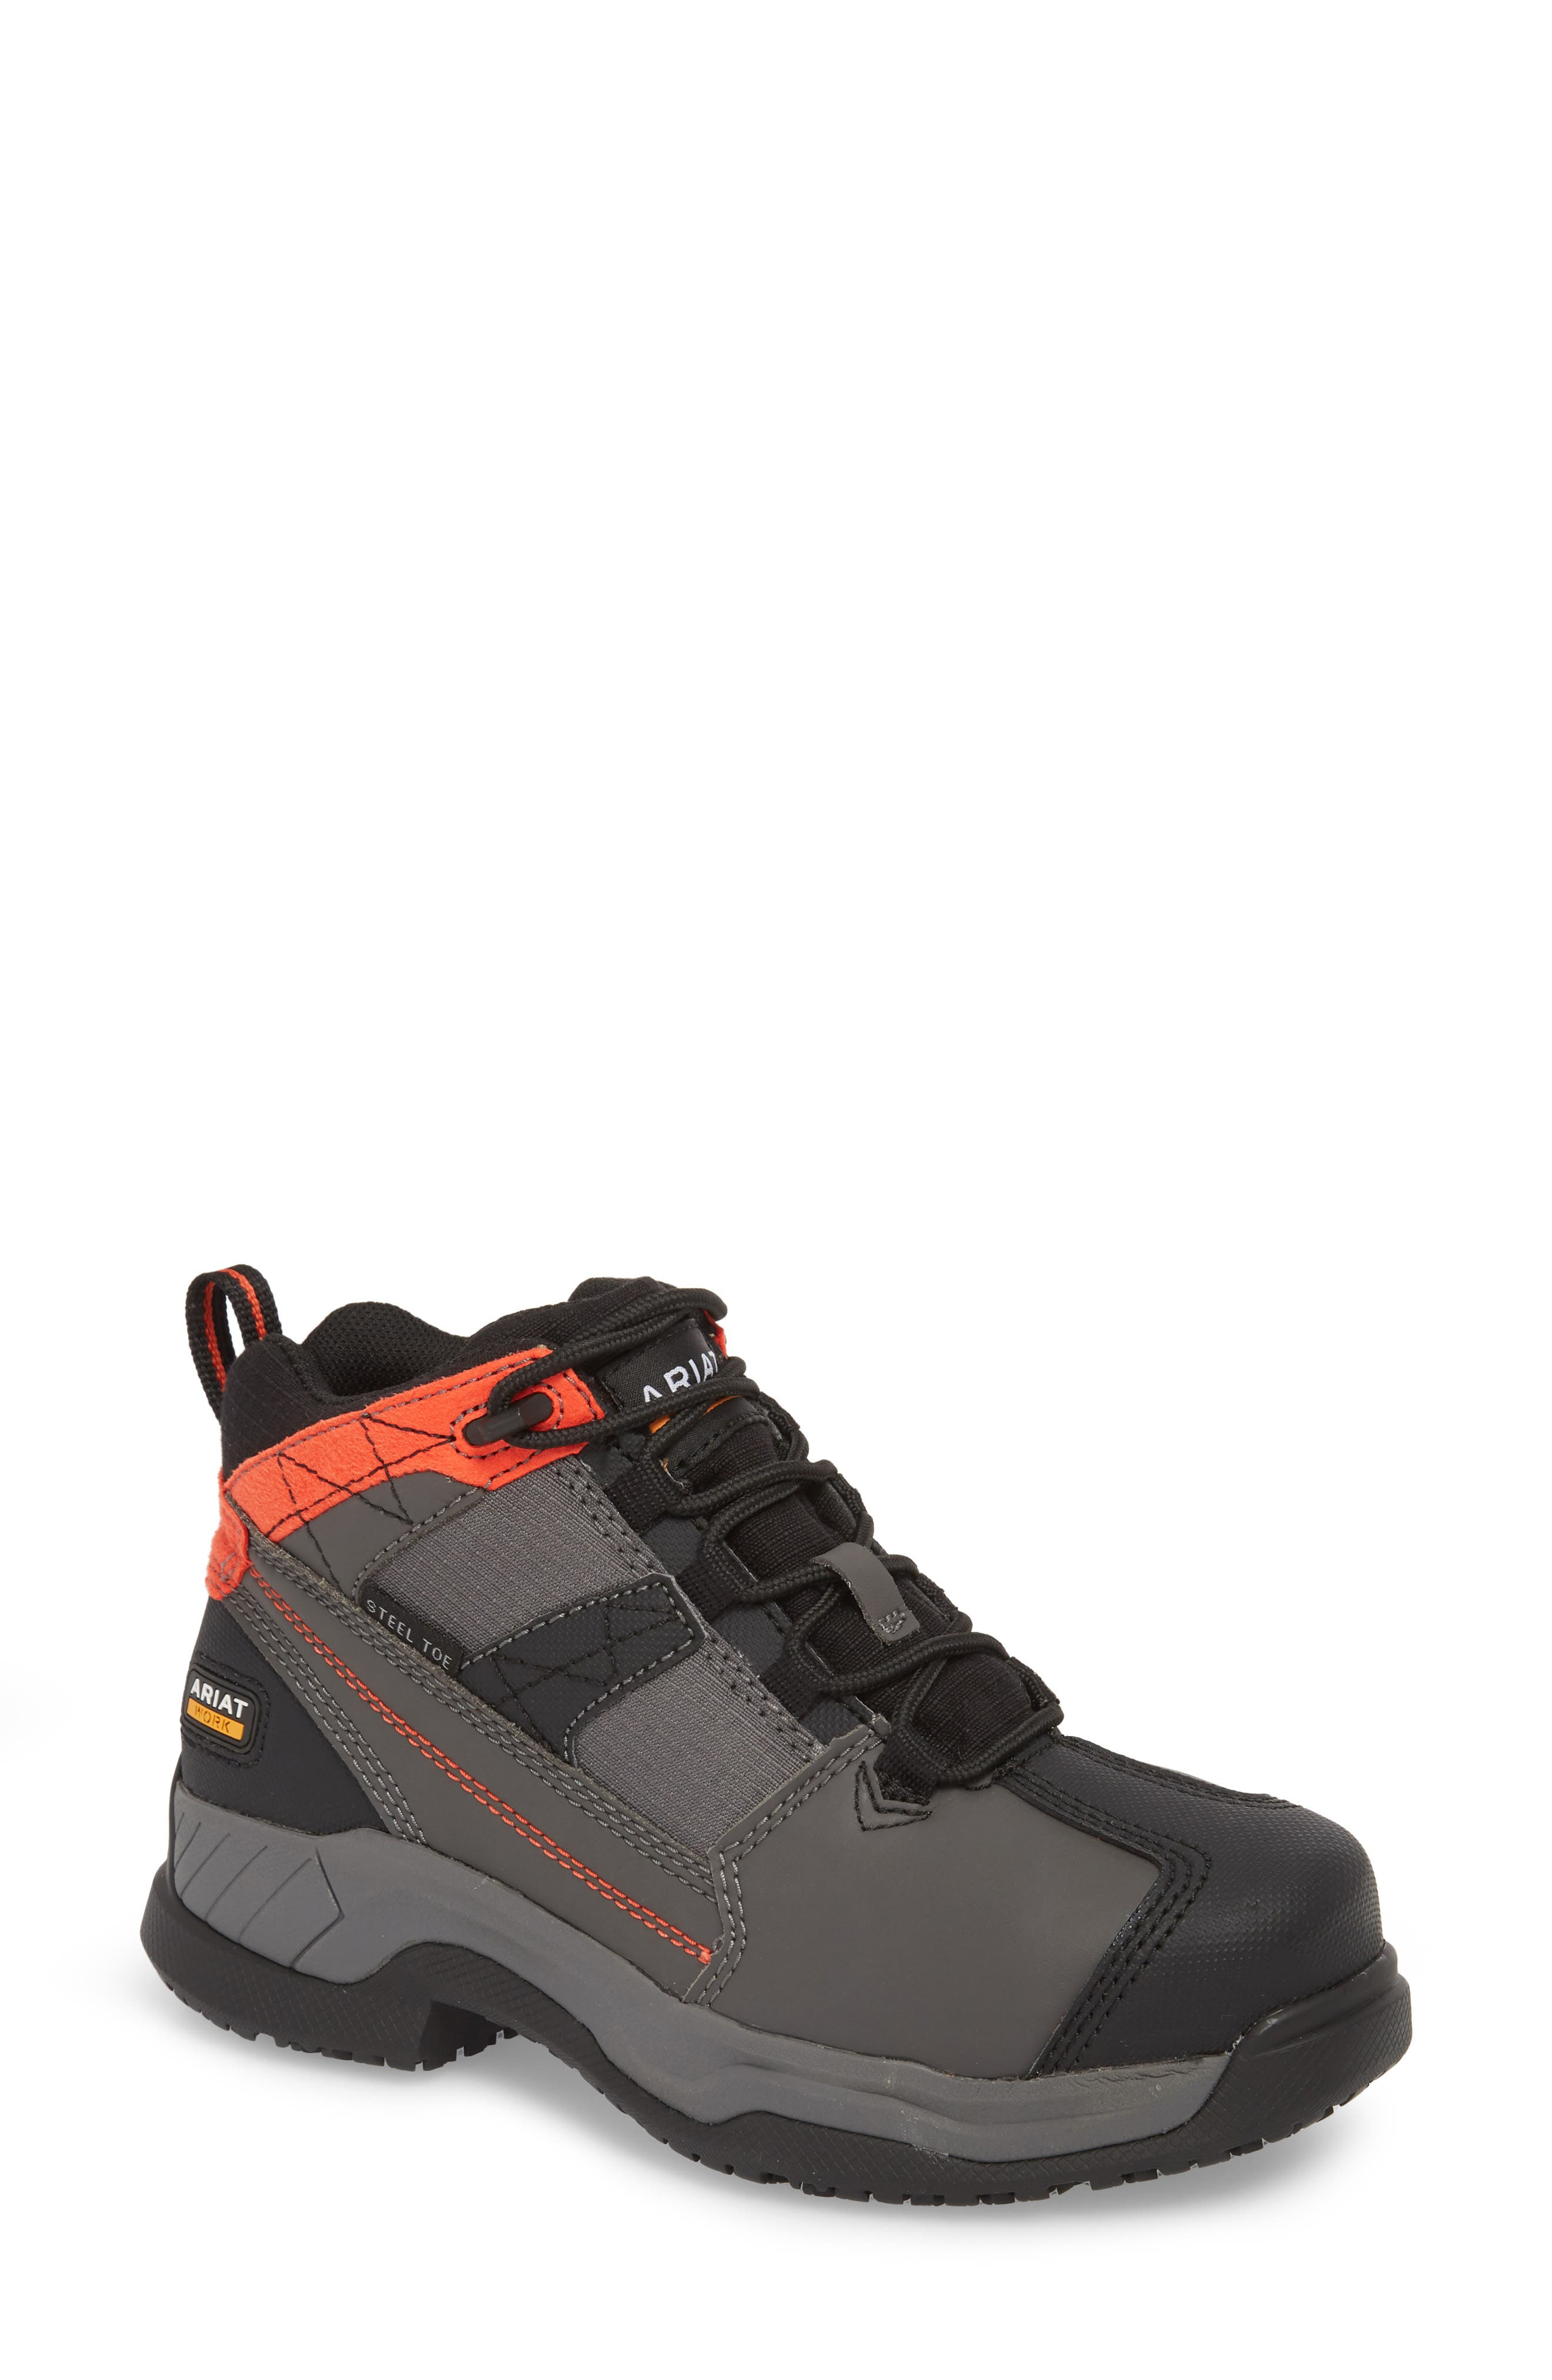 Contender Steel-Toe Work Boot,                             Main thumbnail 1, color,                             Graphite